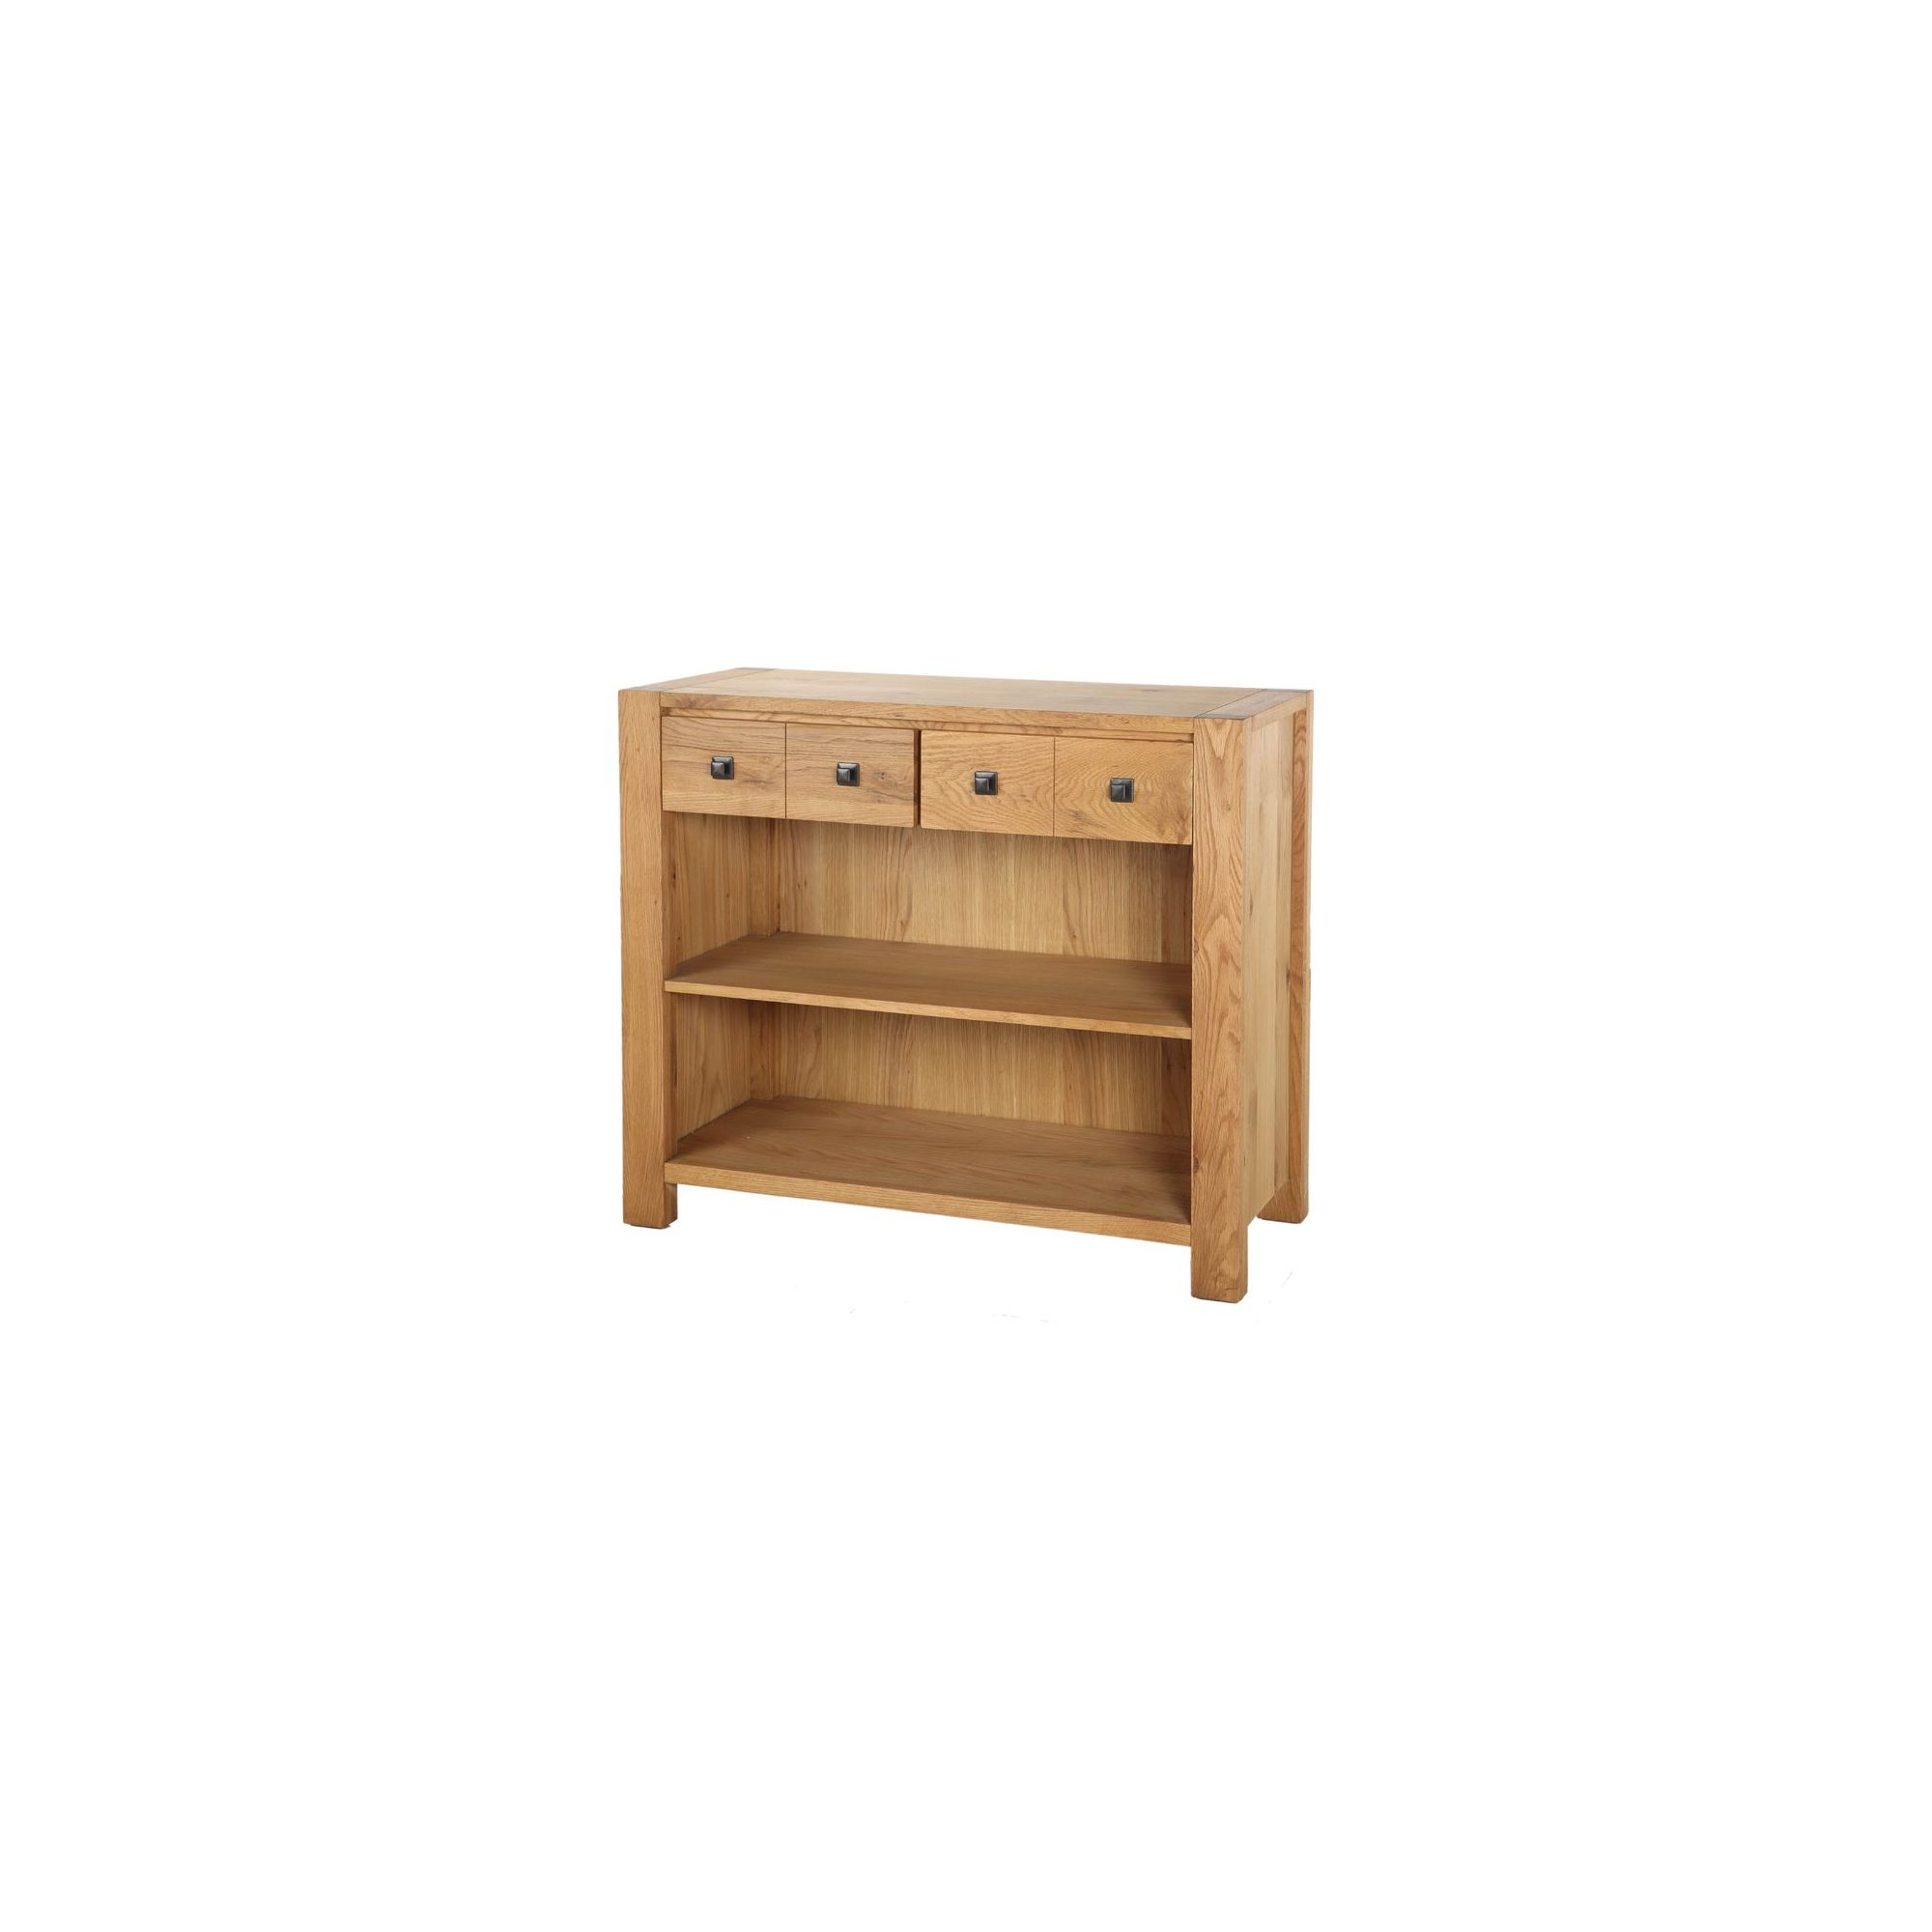 Oakinsen Clermont Hall Table at Tesco Direct